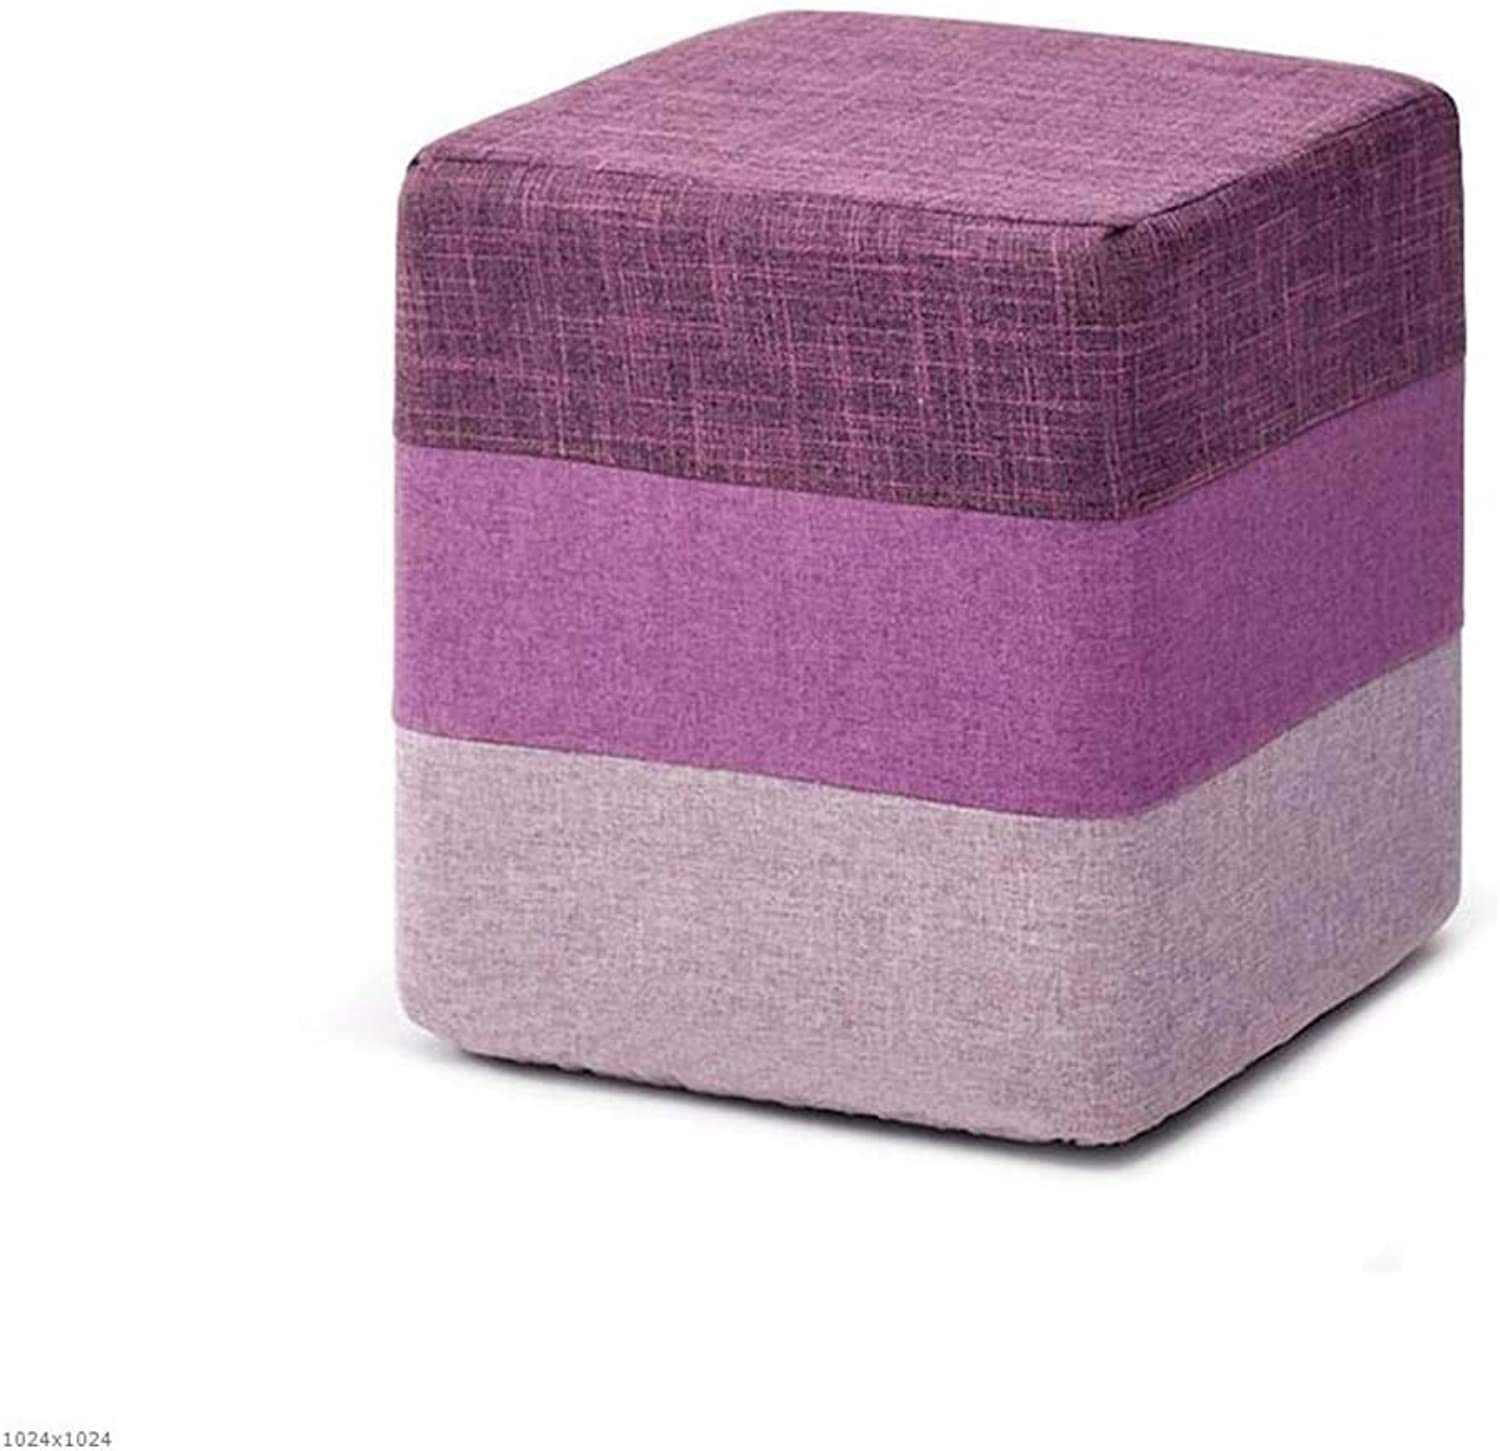 Comfortable Lounge Chair Storage Stool Storage Stool Rainbow color Footstool Living Room Sofa Change shoes Cushion,Round (color   Square)